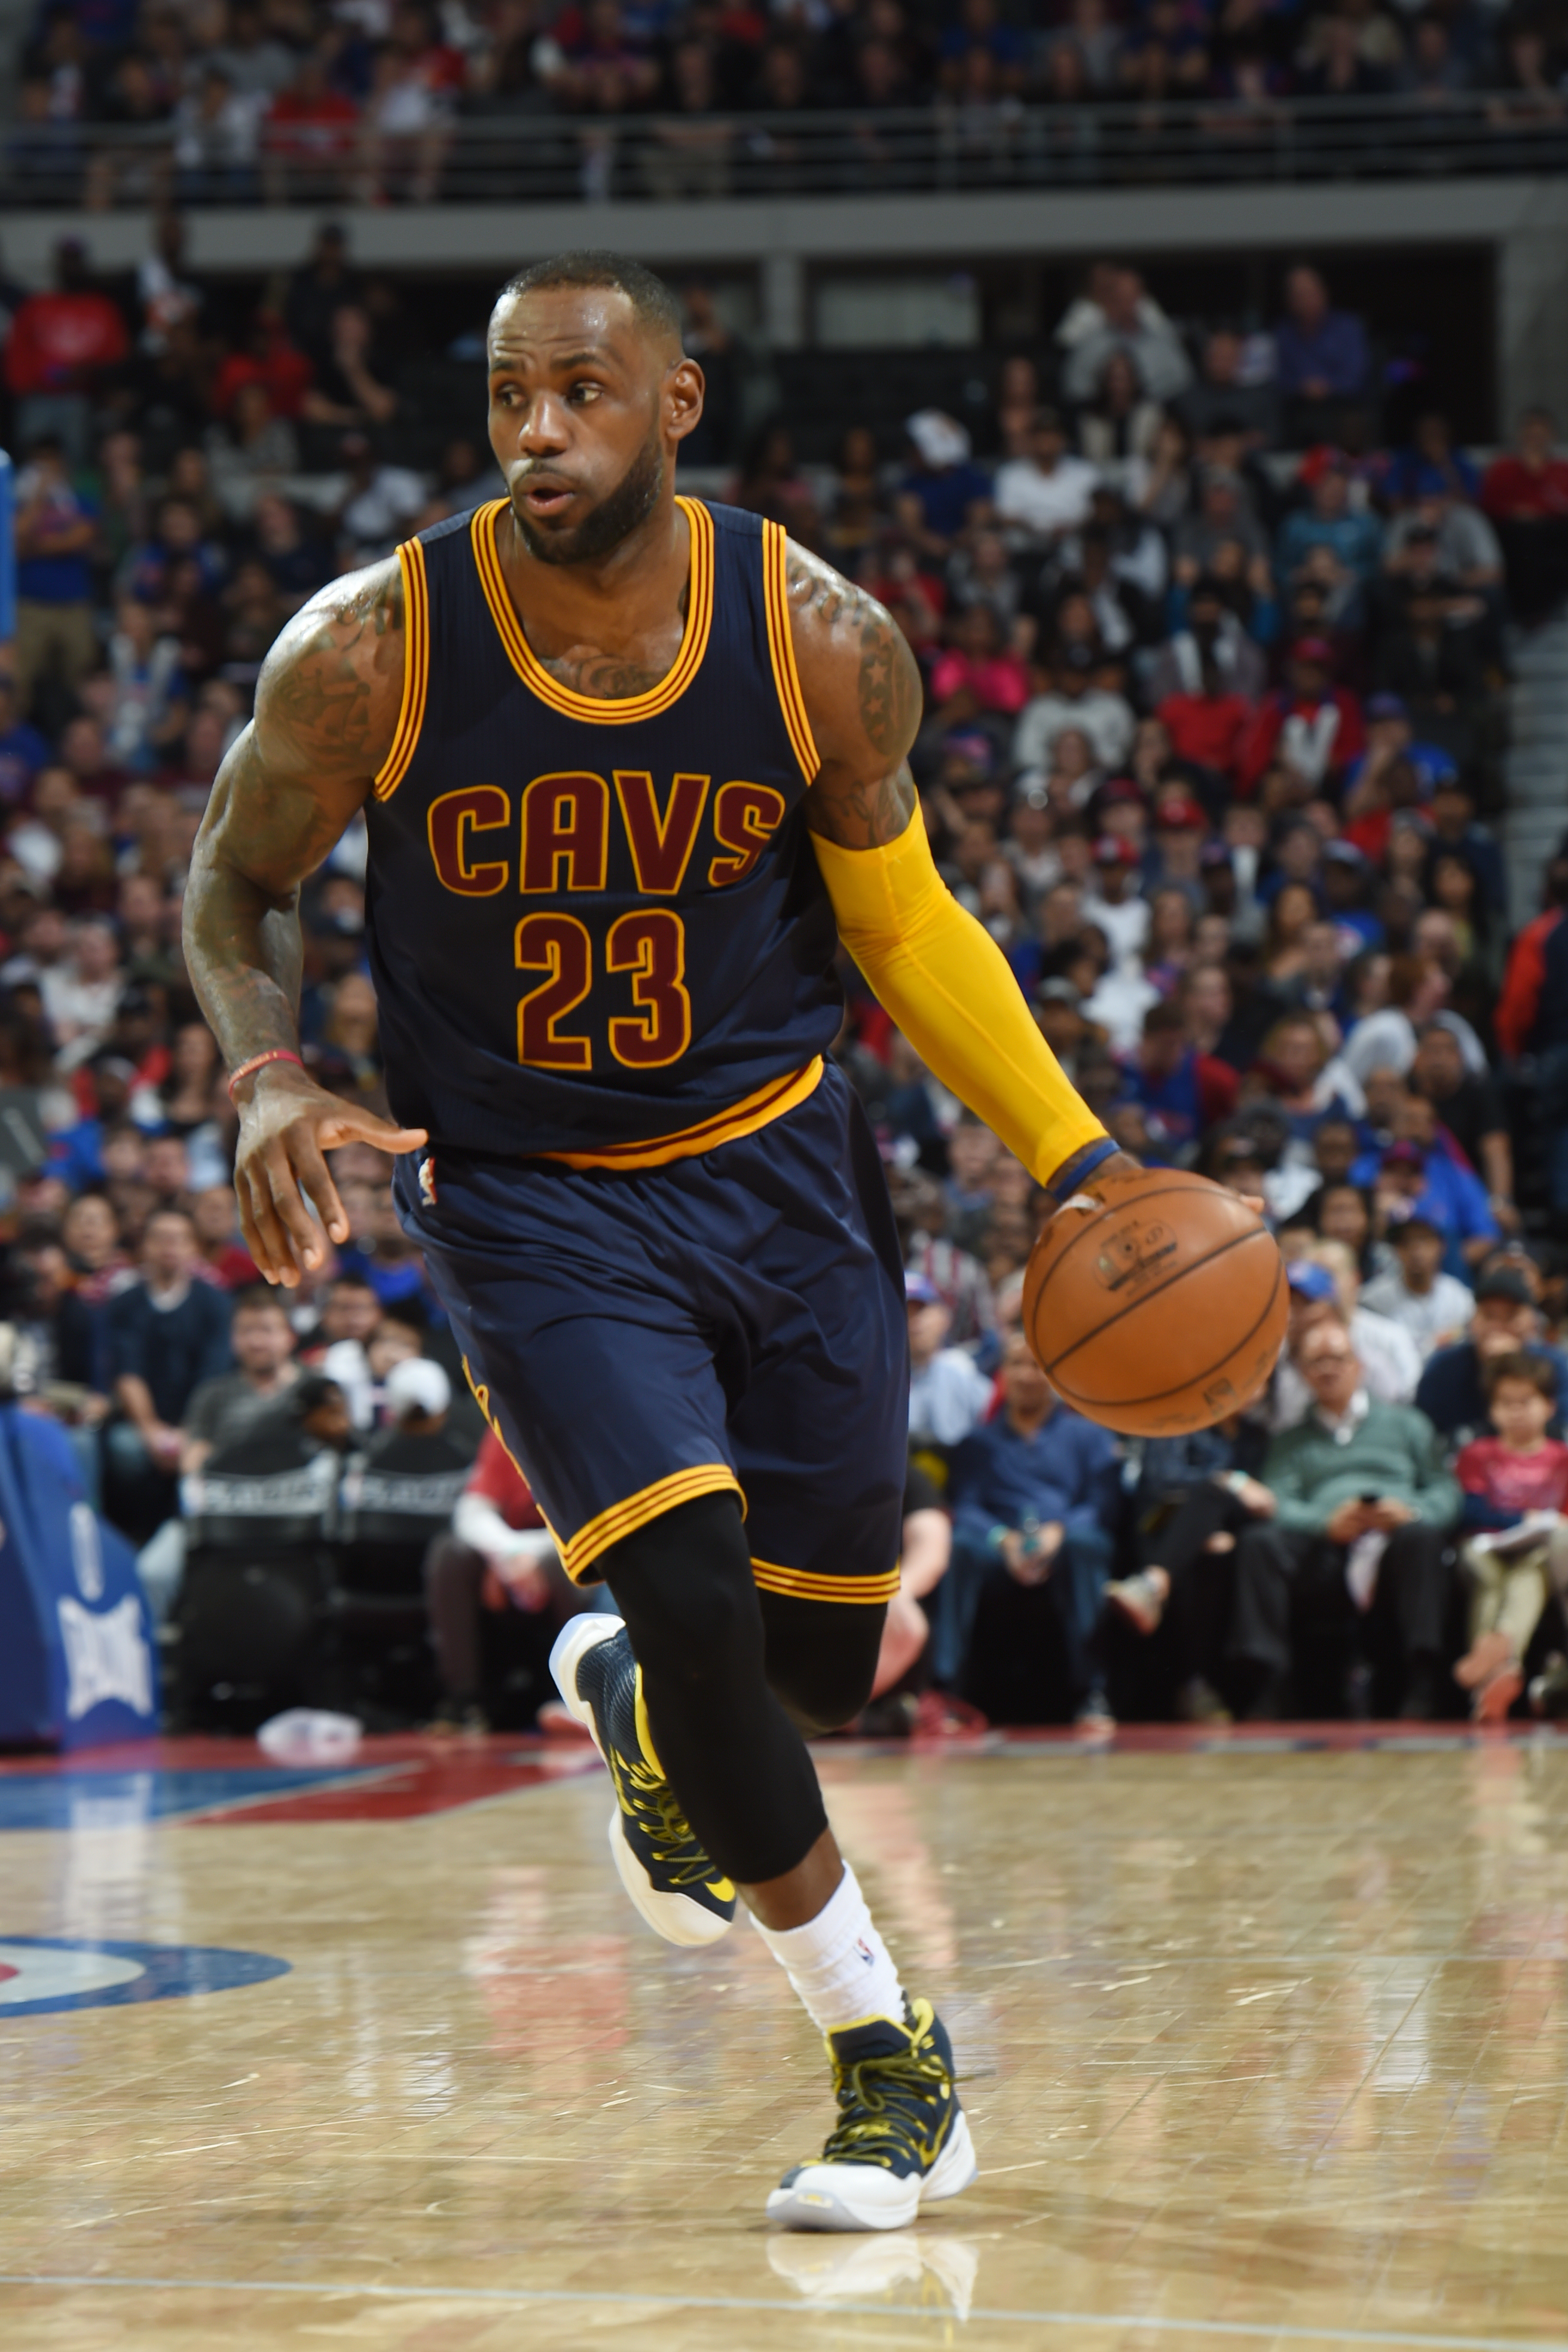 AUBURN HILLS, MI  - APRIL 22: LeBron James #23 of the Cleveland Cavaliers drives against the Detroit Pistons during Game Three of the Eastern Conference Quarterfinals during the 2016 NBA Playoffs against on April 22, 2016 at The Palace of Auburn Hills in